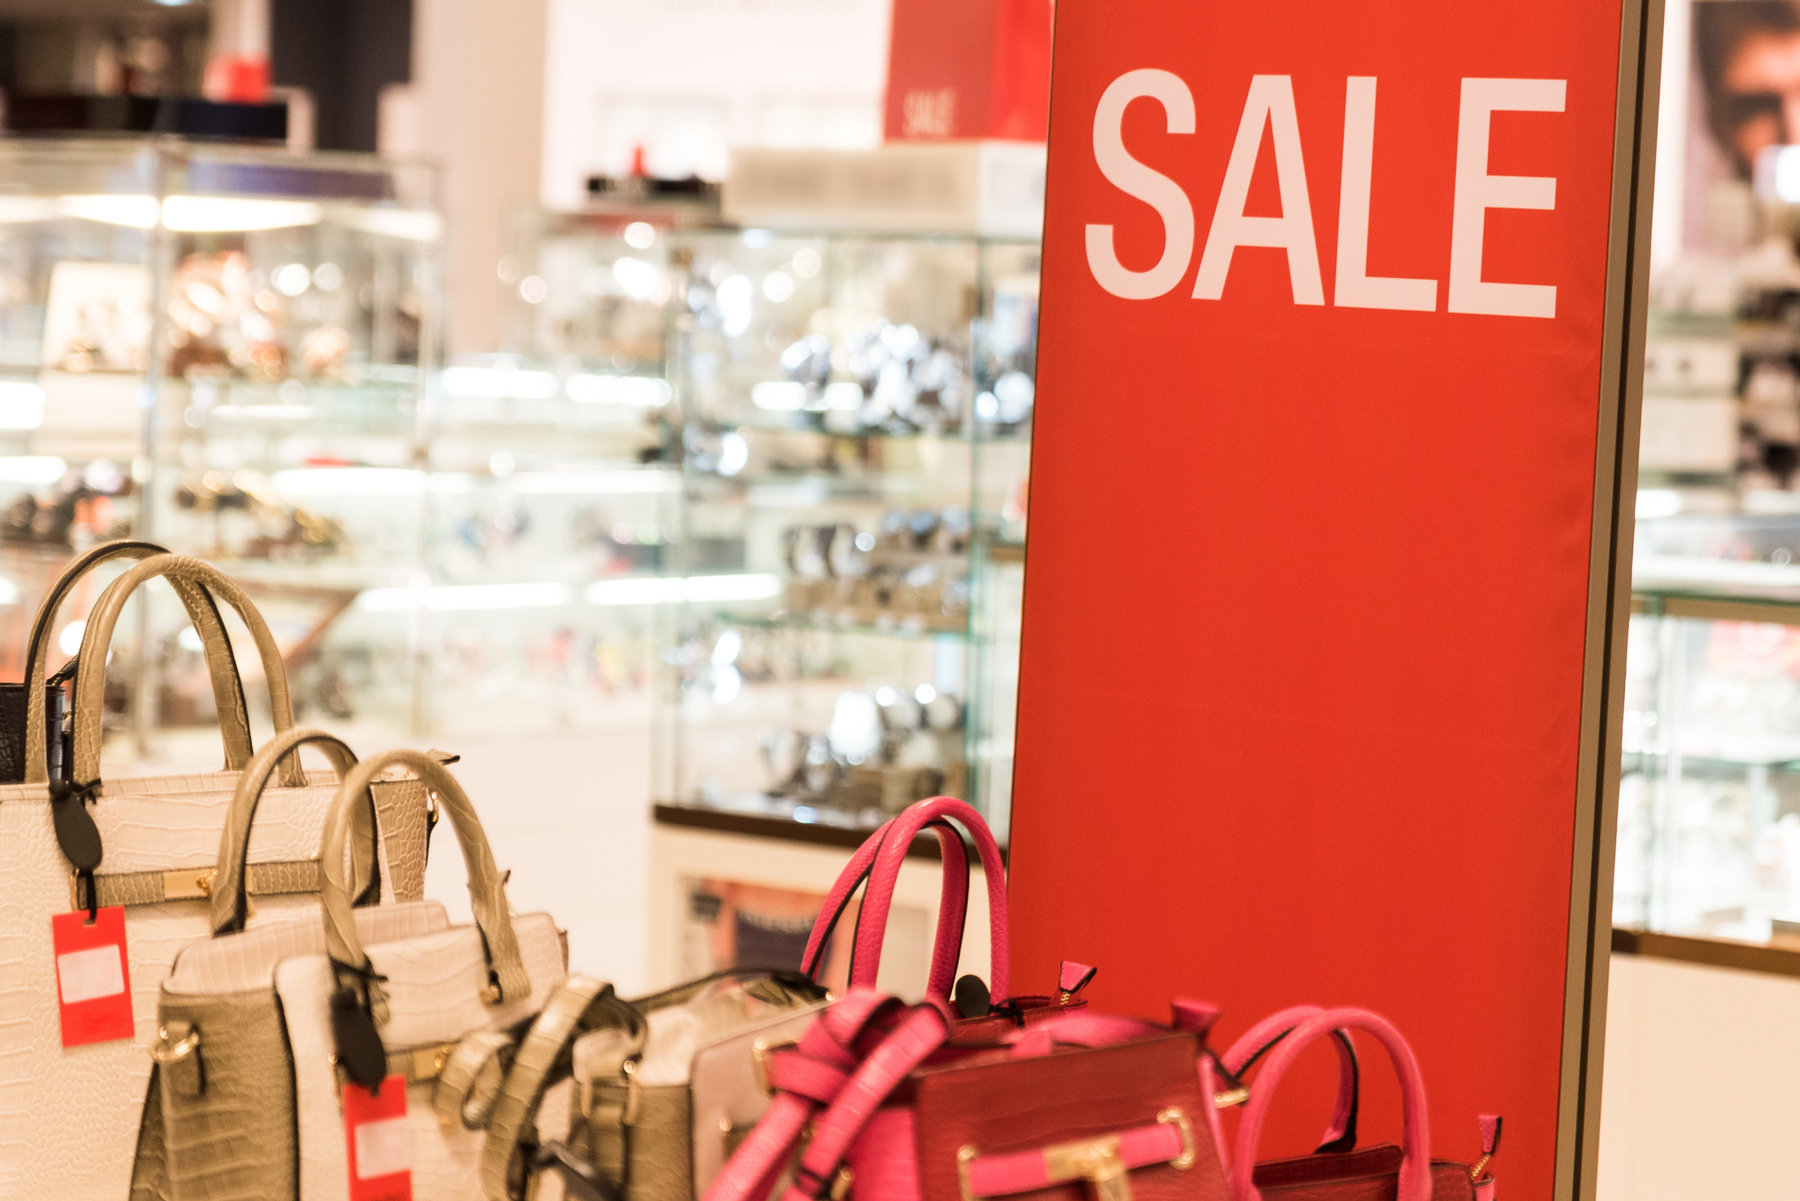 Are outlet malls a good deal? Handbag sale sign